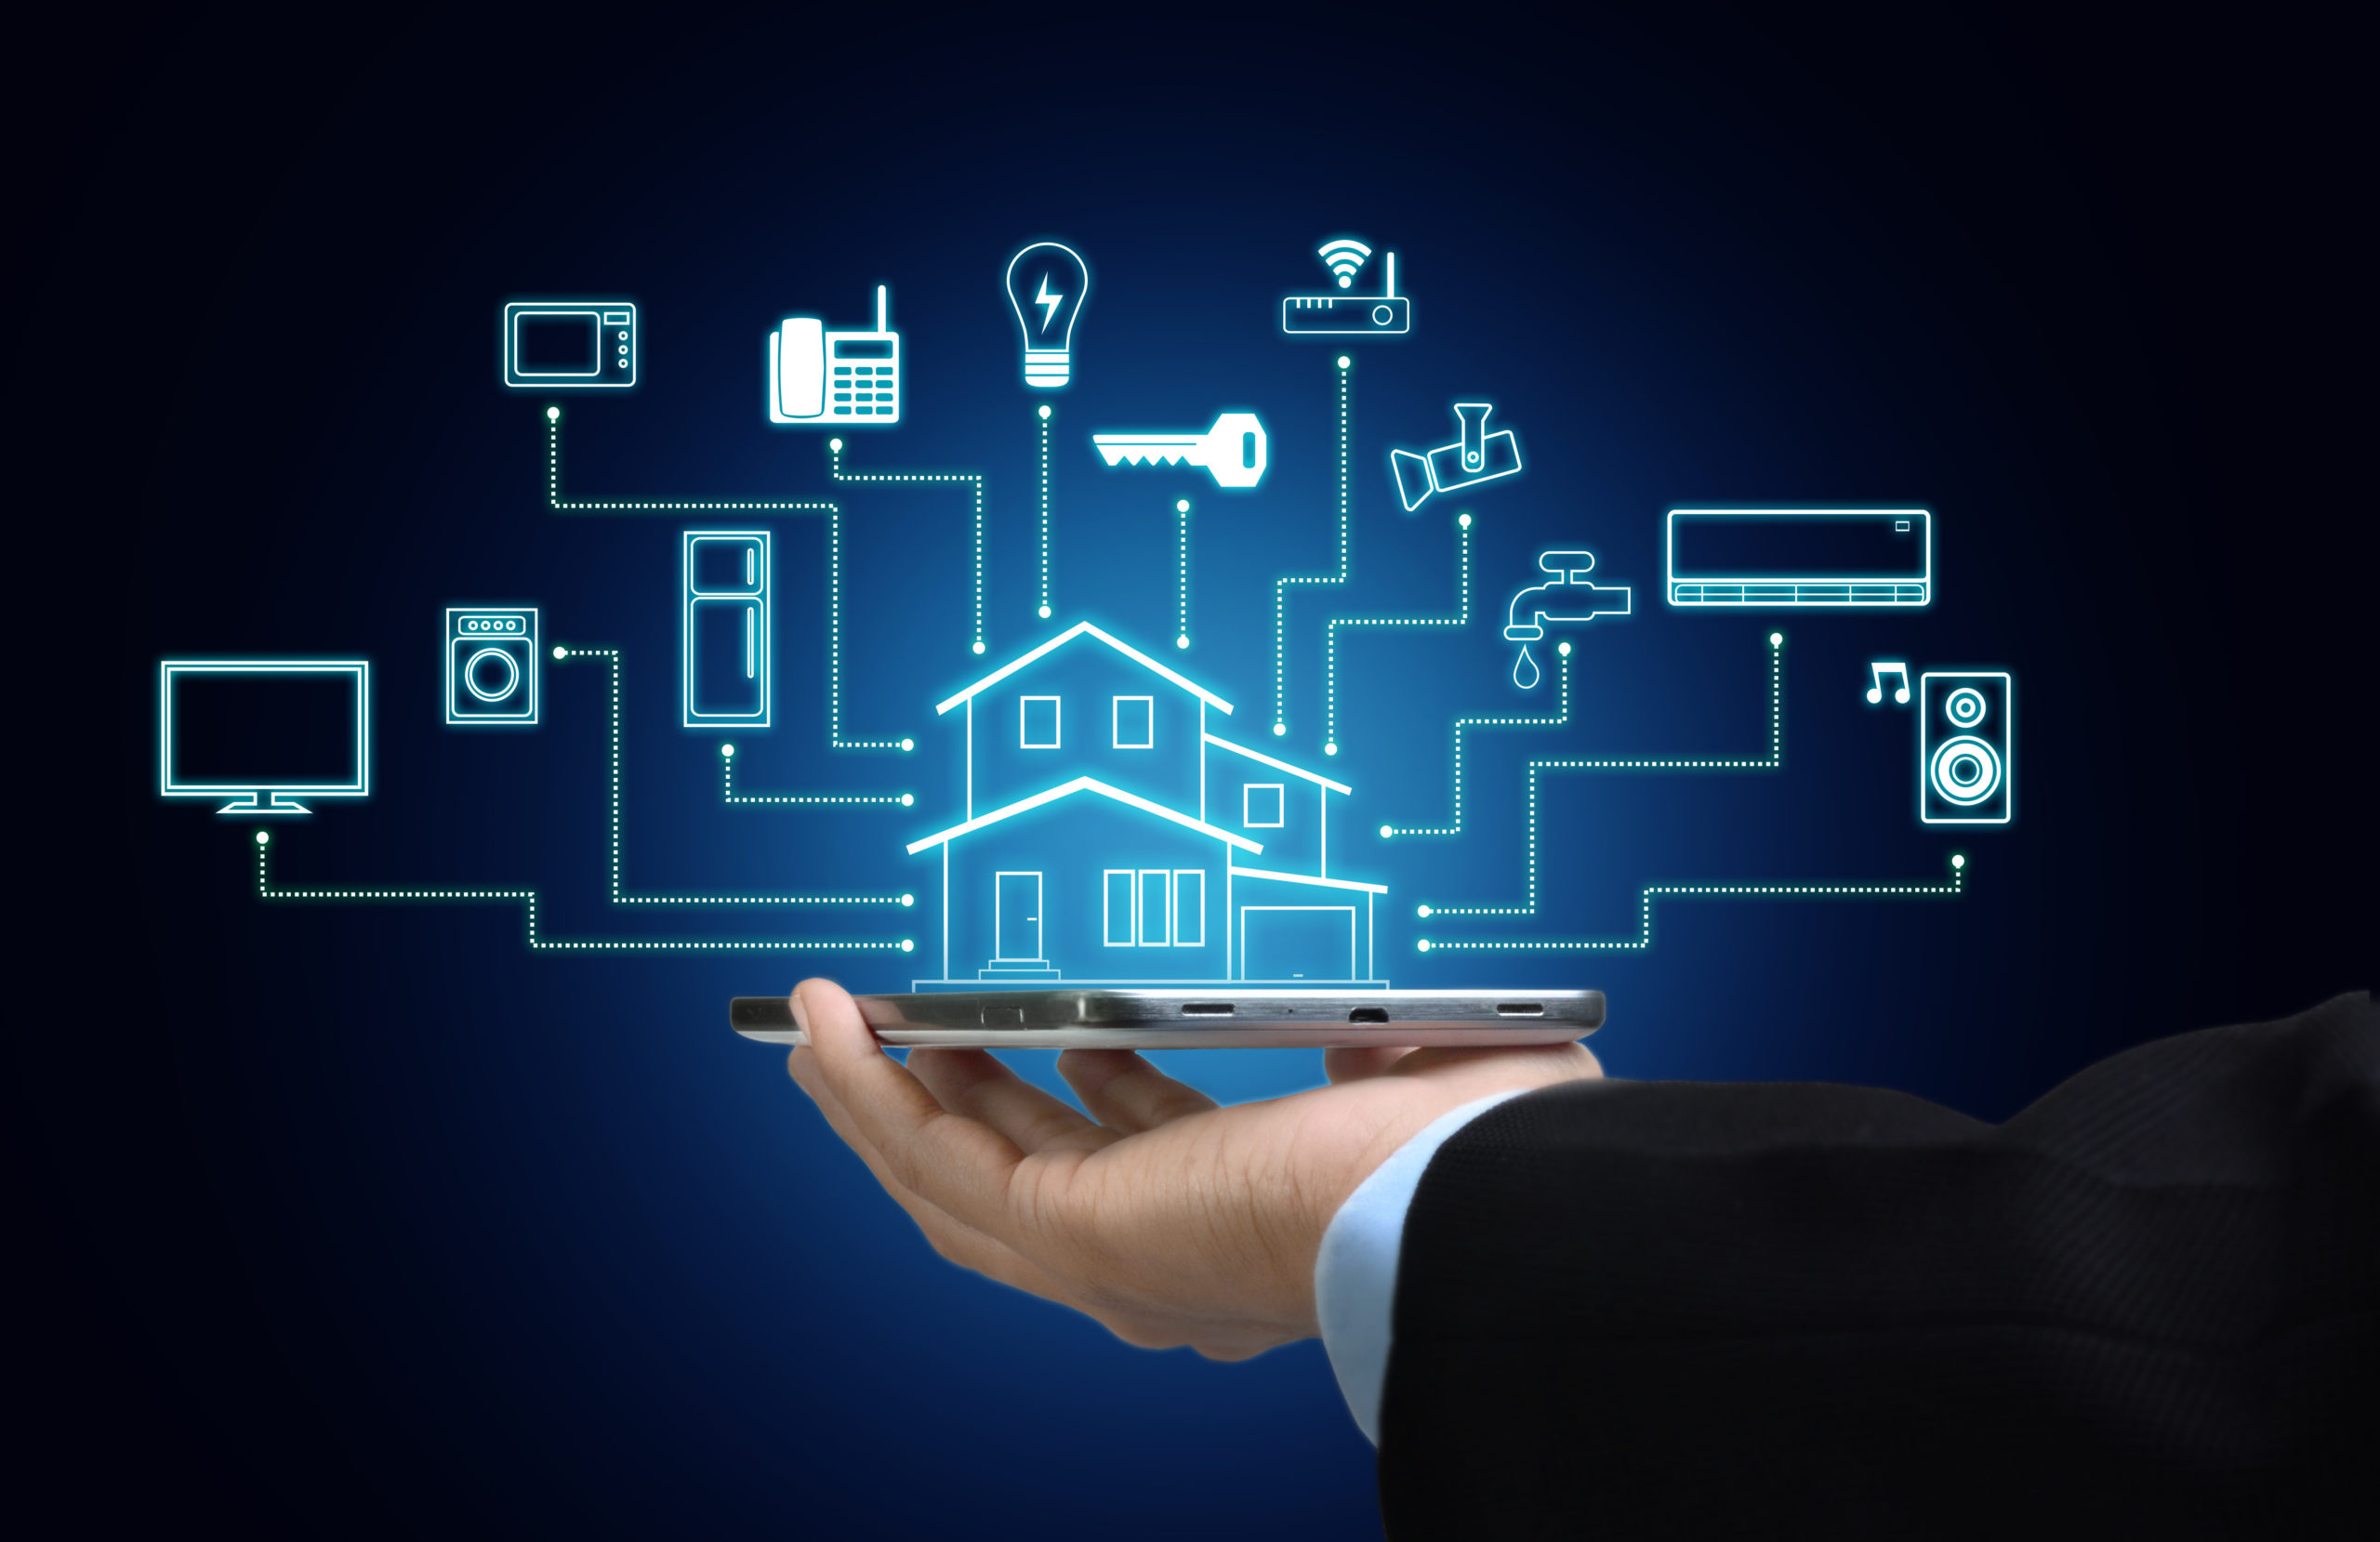 Internet of things and smart home concept